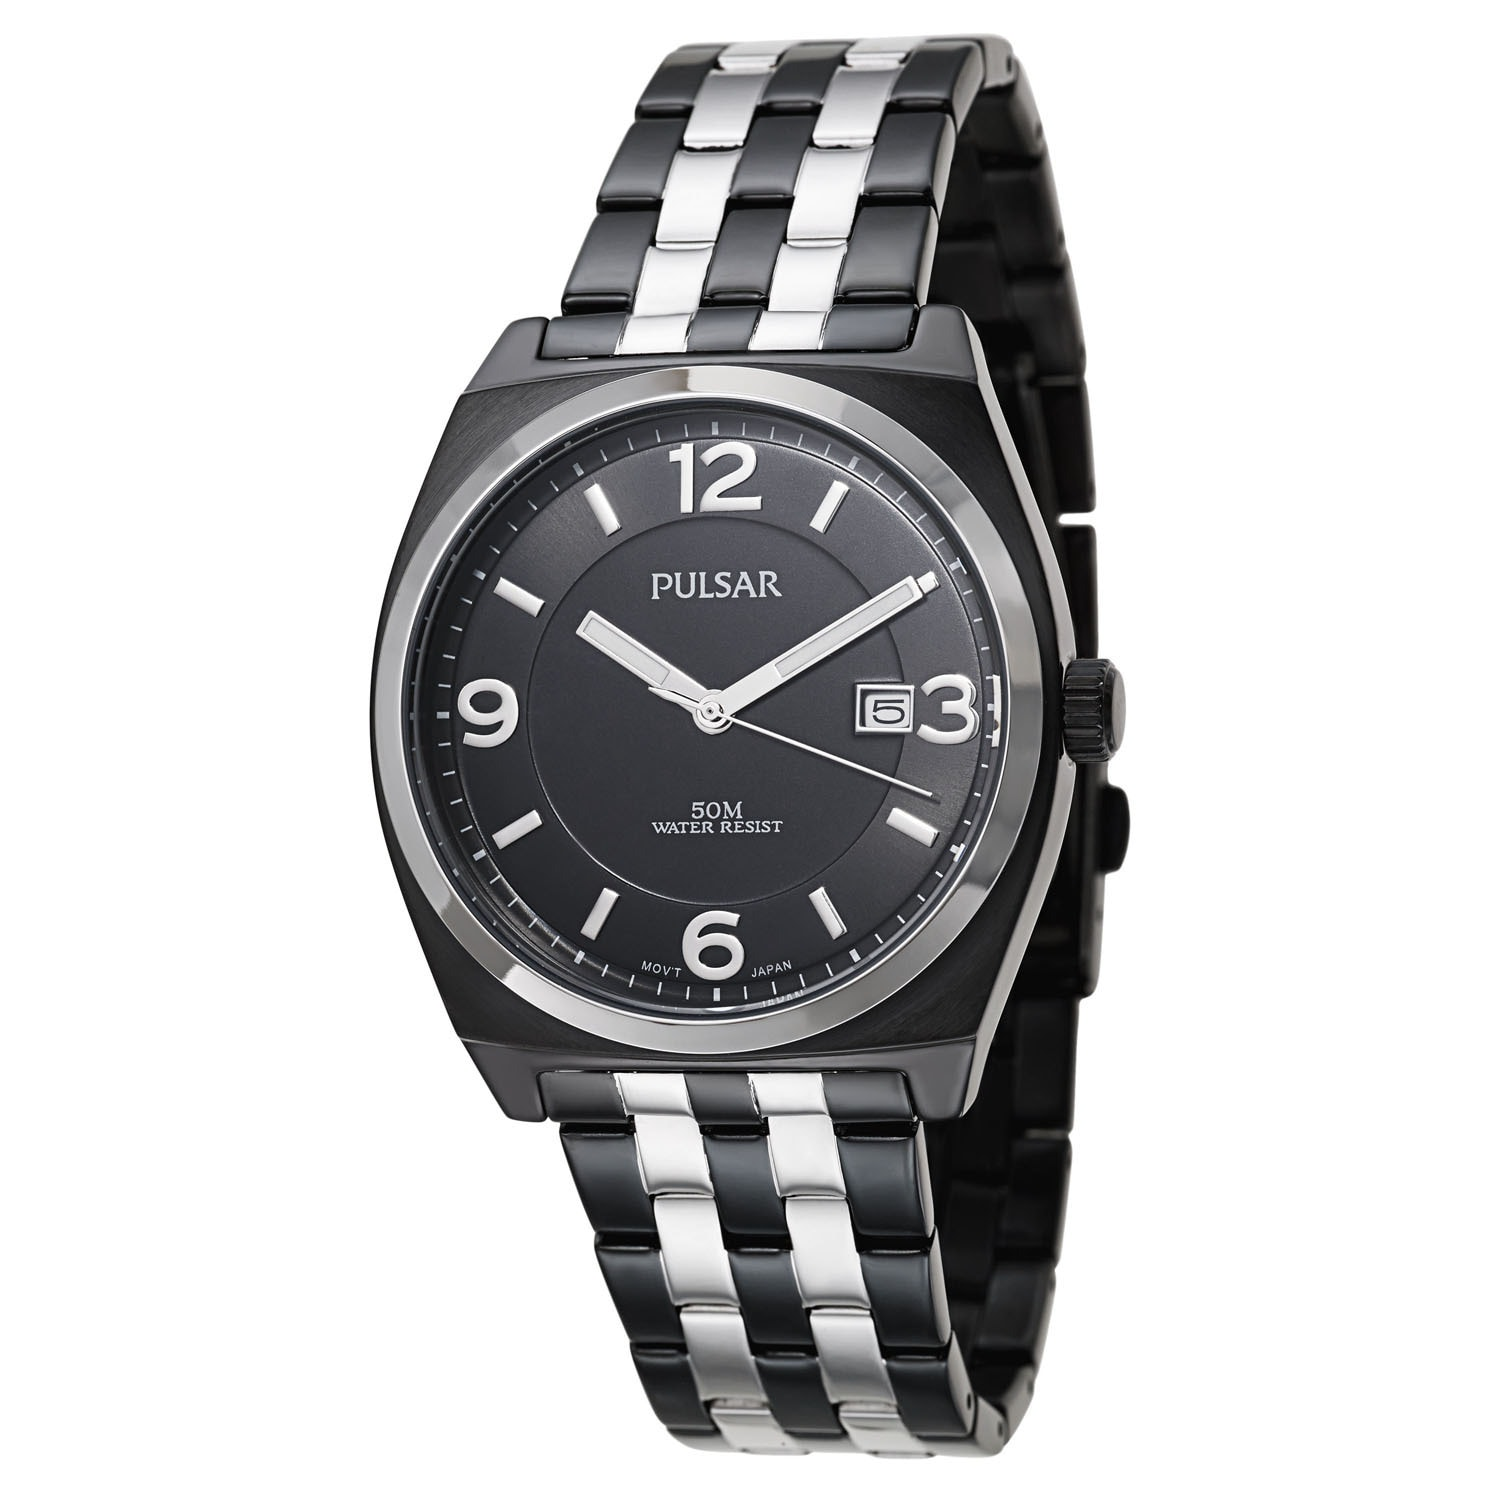 PULSAR Men's PS9281 Watch (casual-watches), Black, Size O...